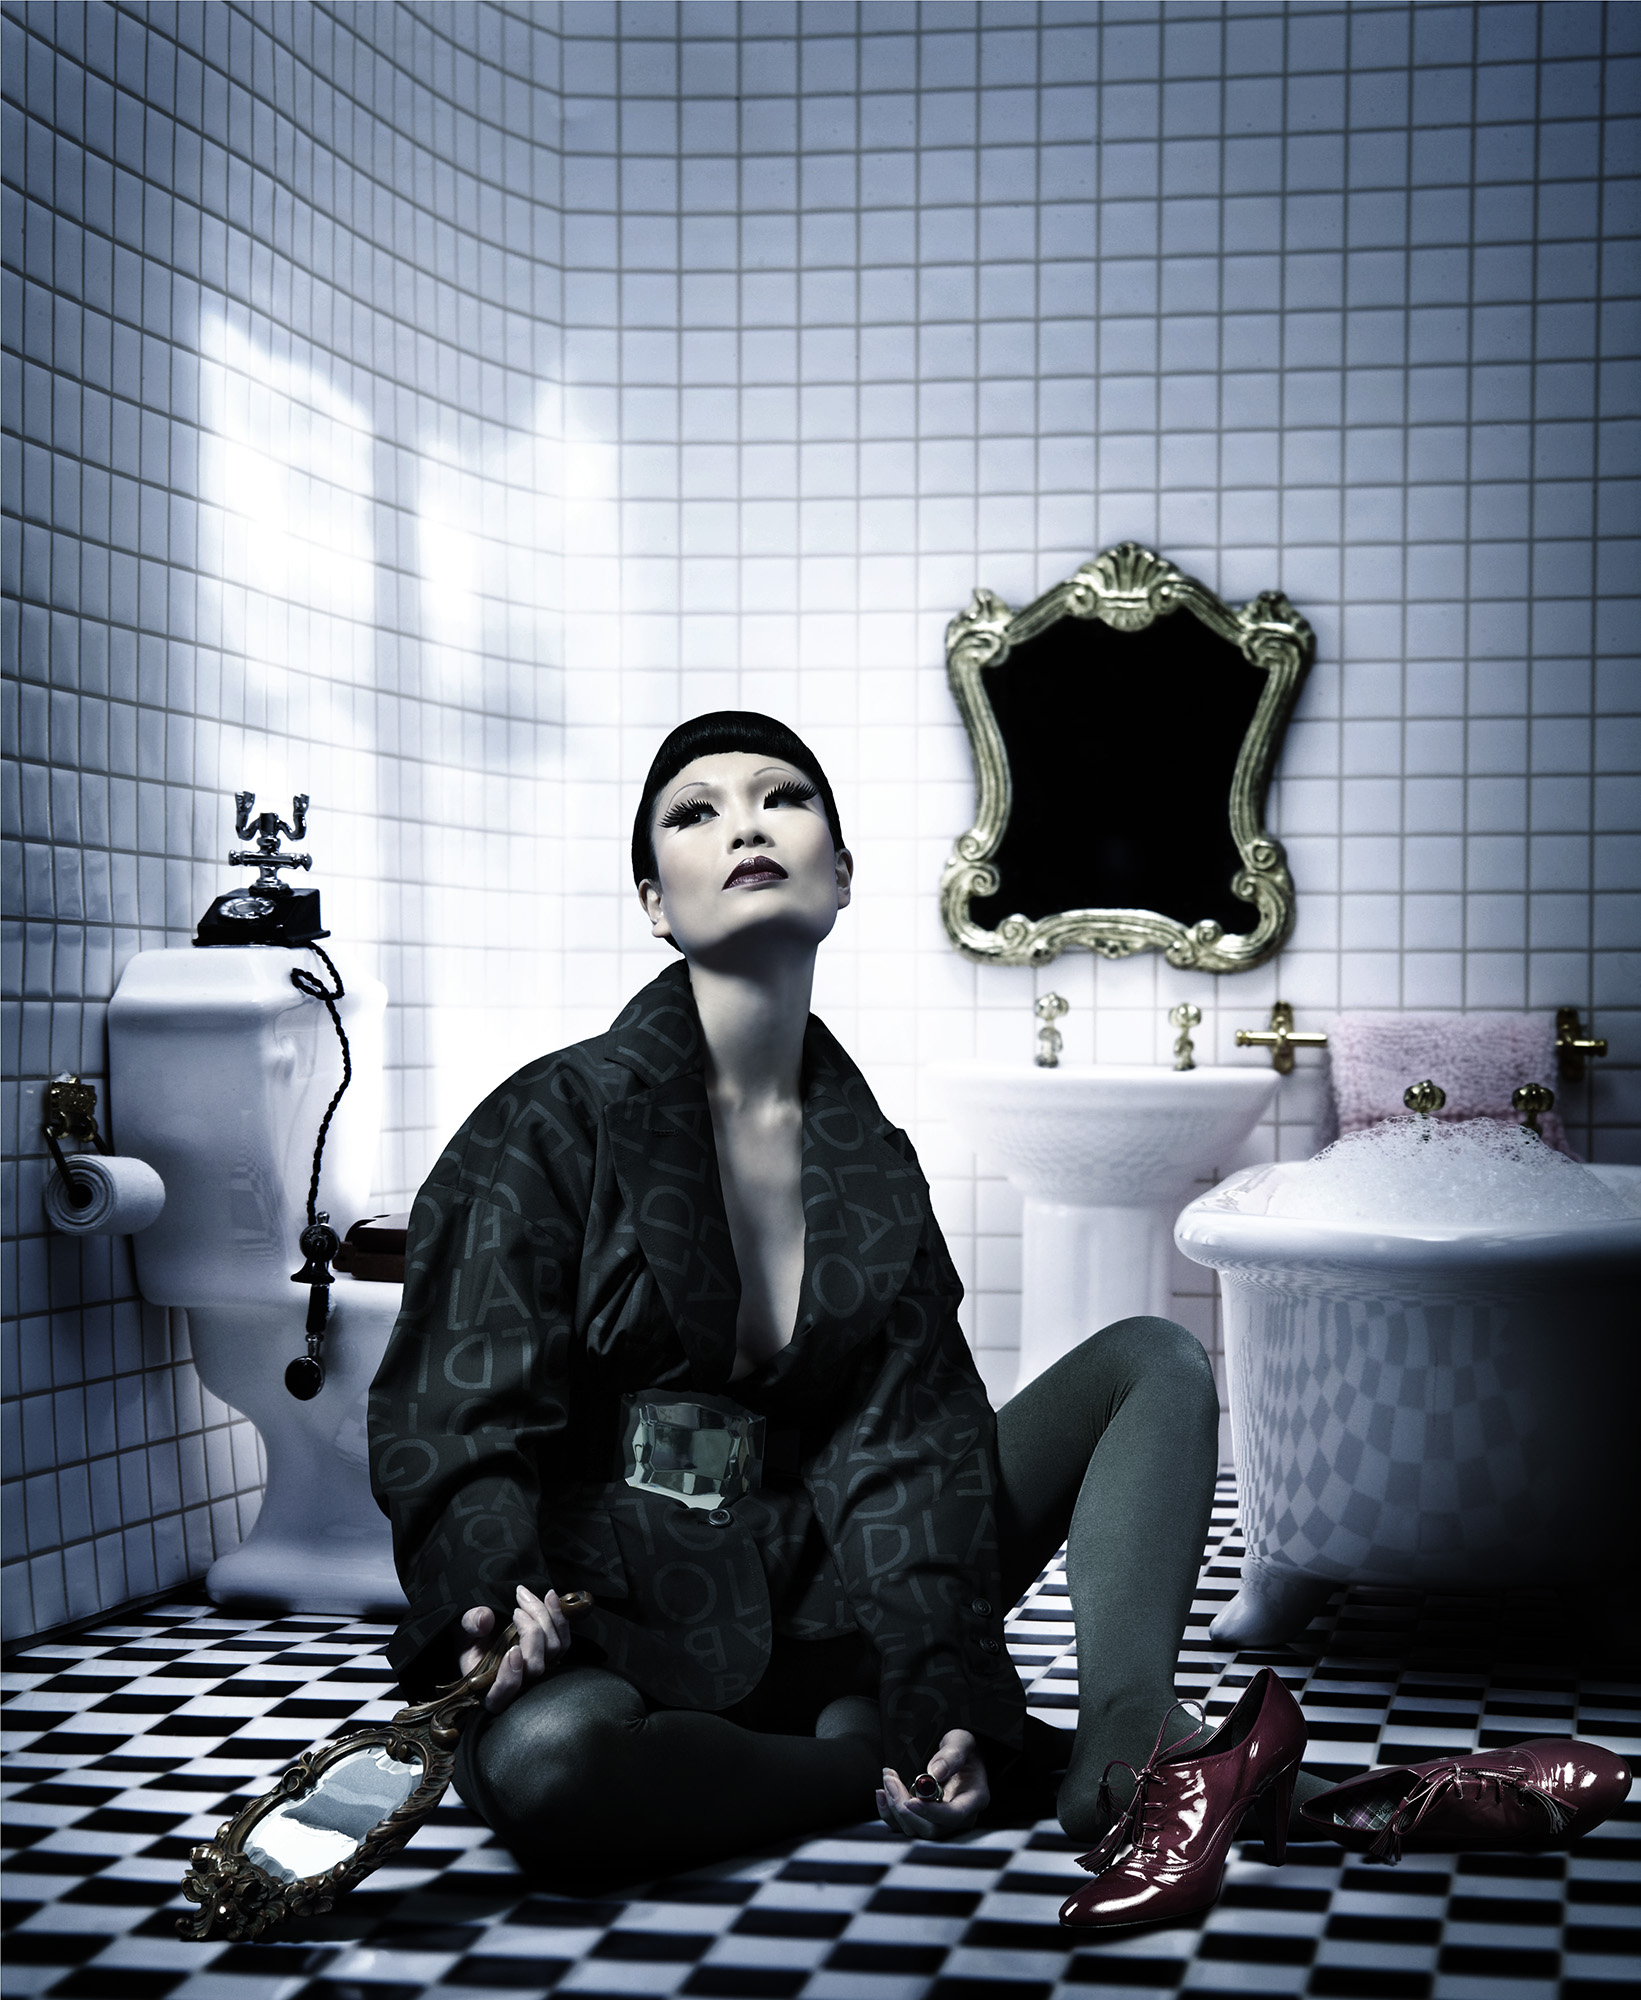 Anatol de cap Rouge - growing up - bathroom 2